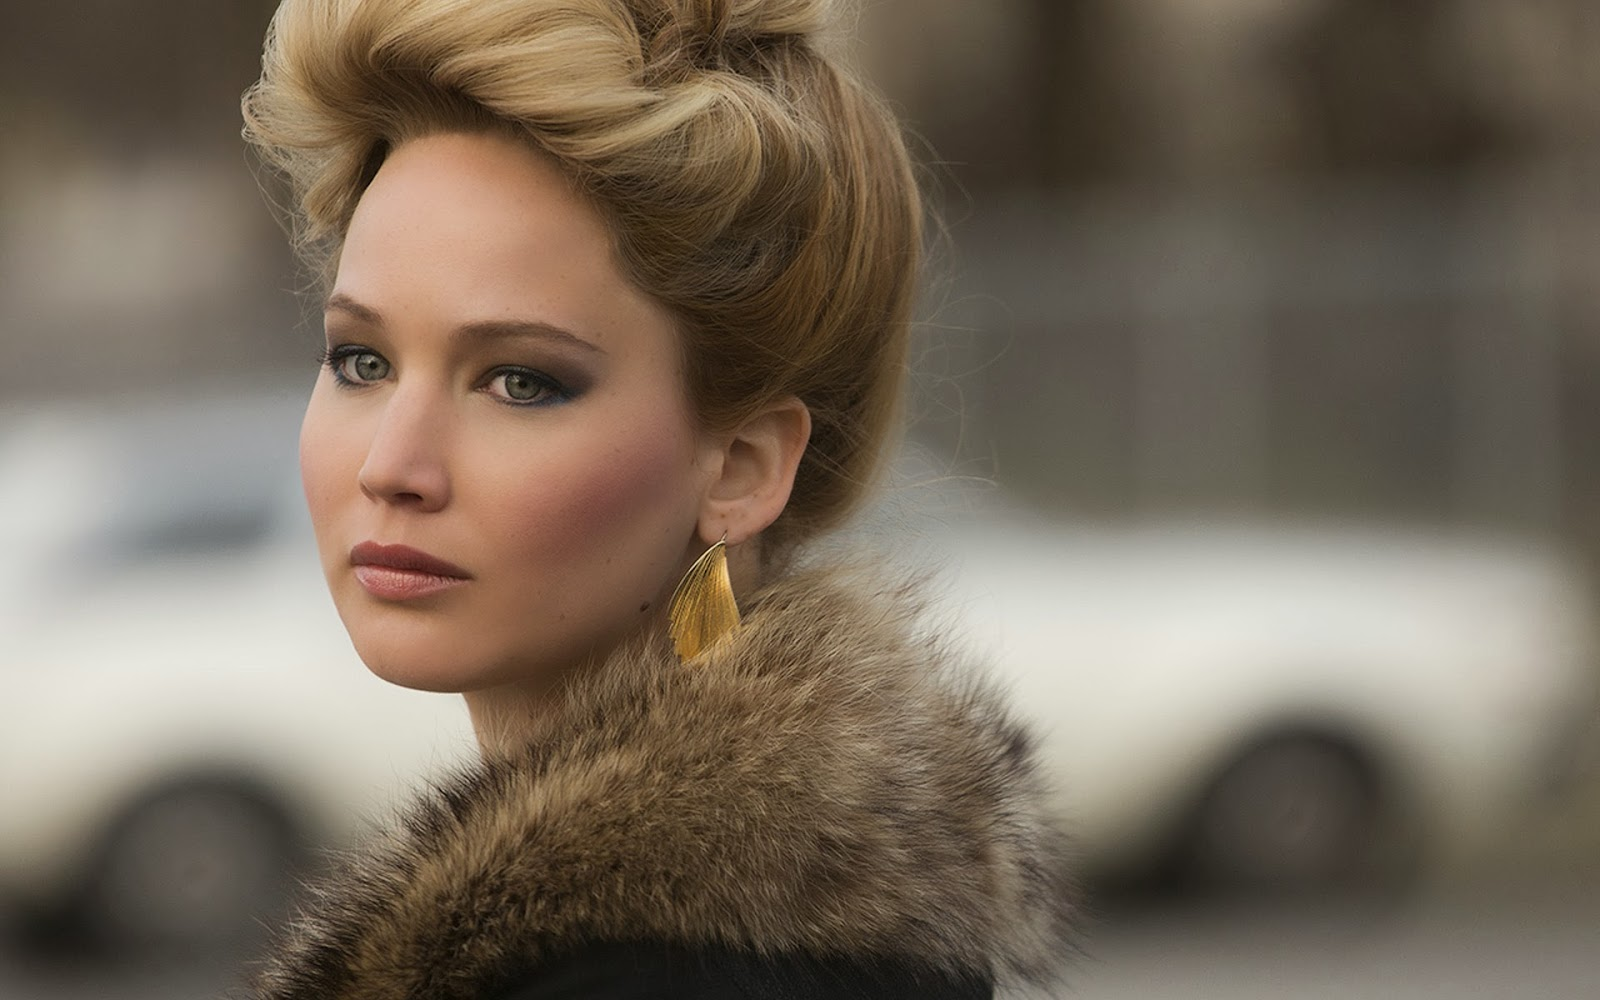 Jennifer Lawrence La gran estafa americana